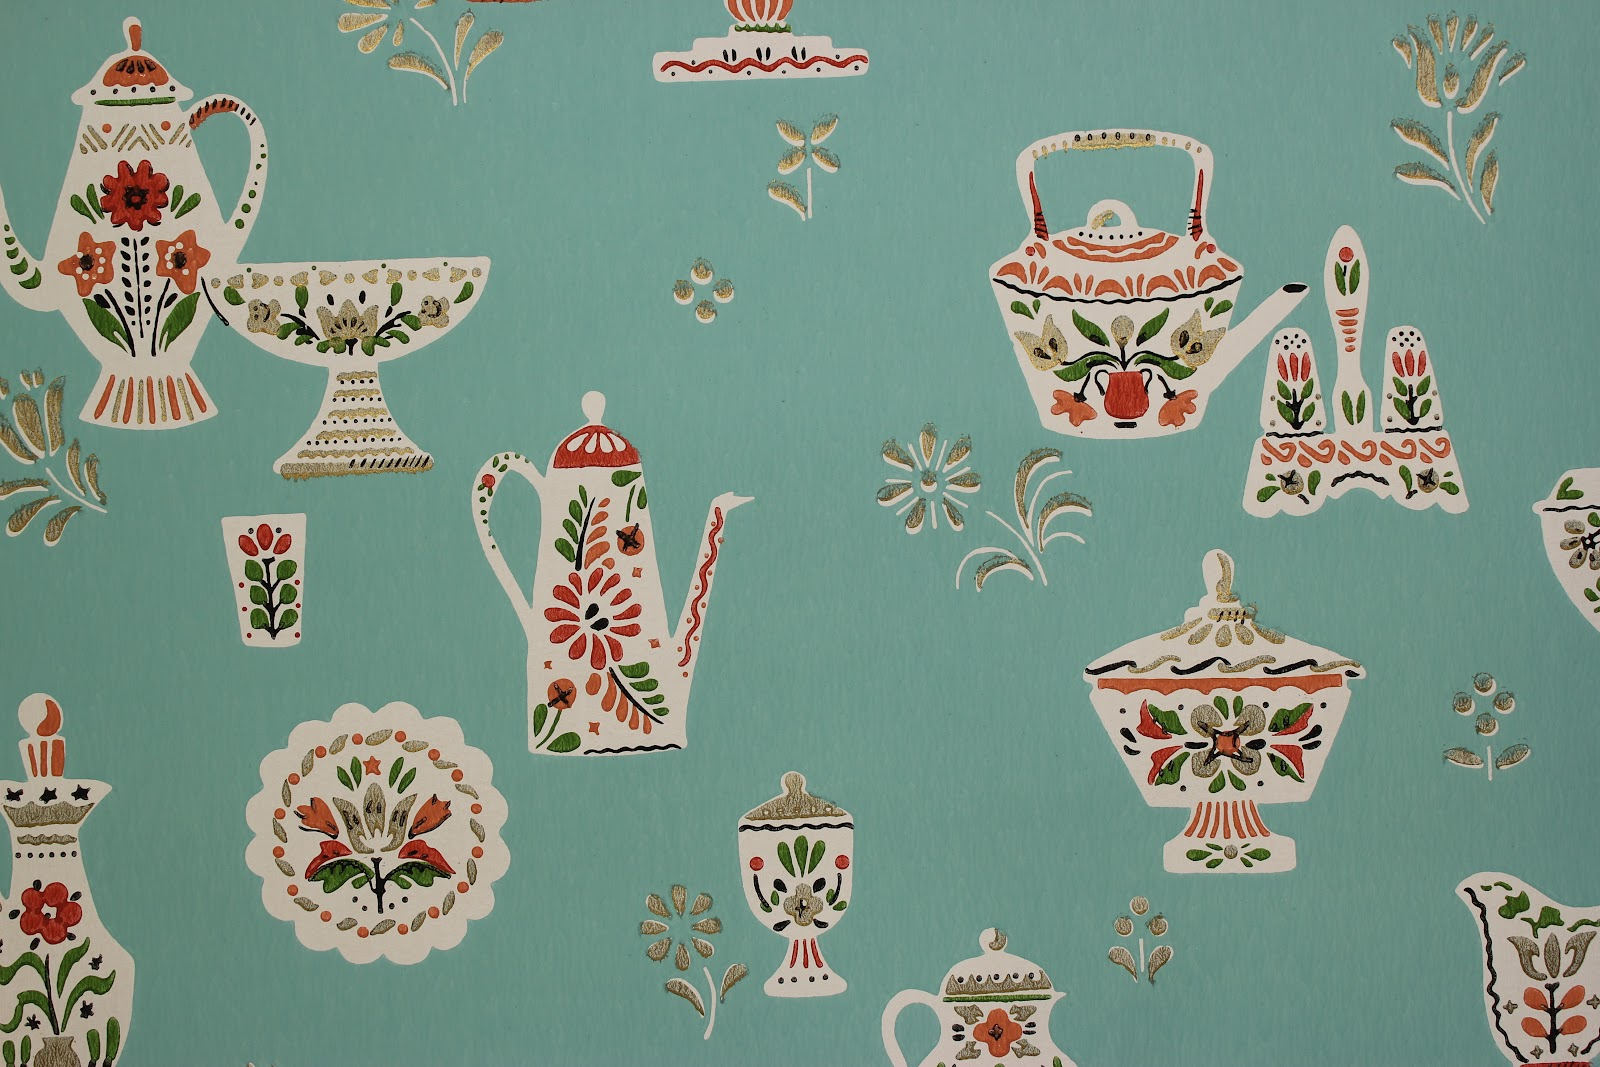 Rosies Vintage Wallpaper History of Kitchen Wallpaper 1600x1067